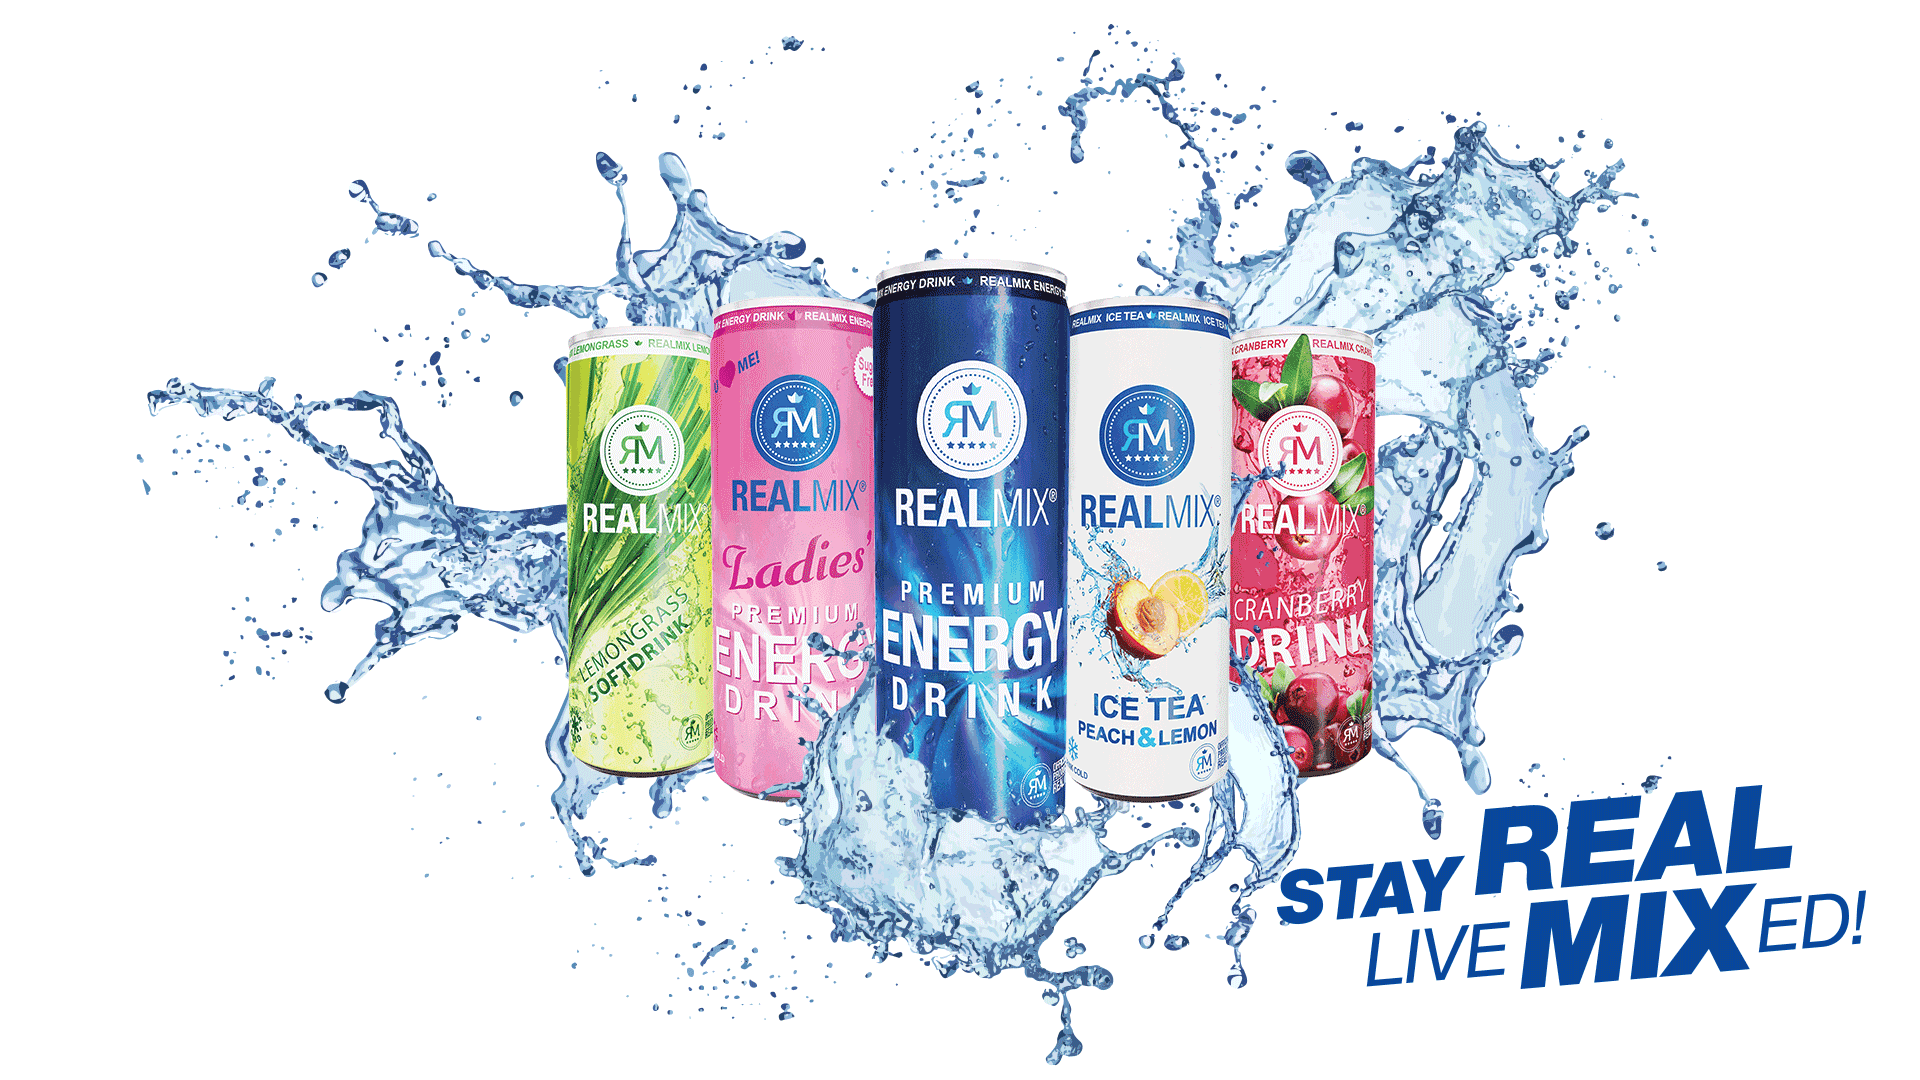 REALMIX Beverages Premium Energydrink - Stay REAL, live MIXed!